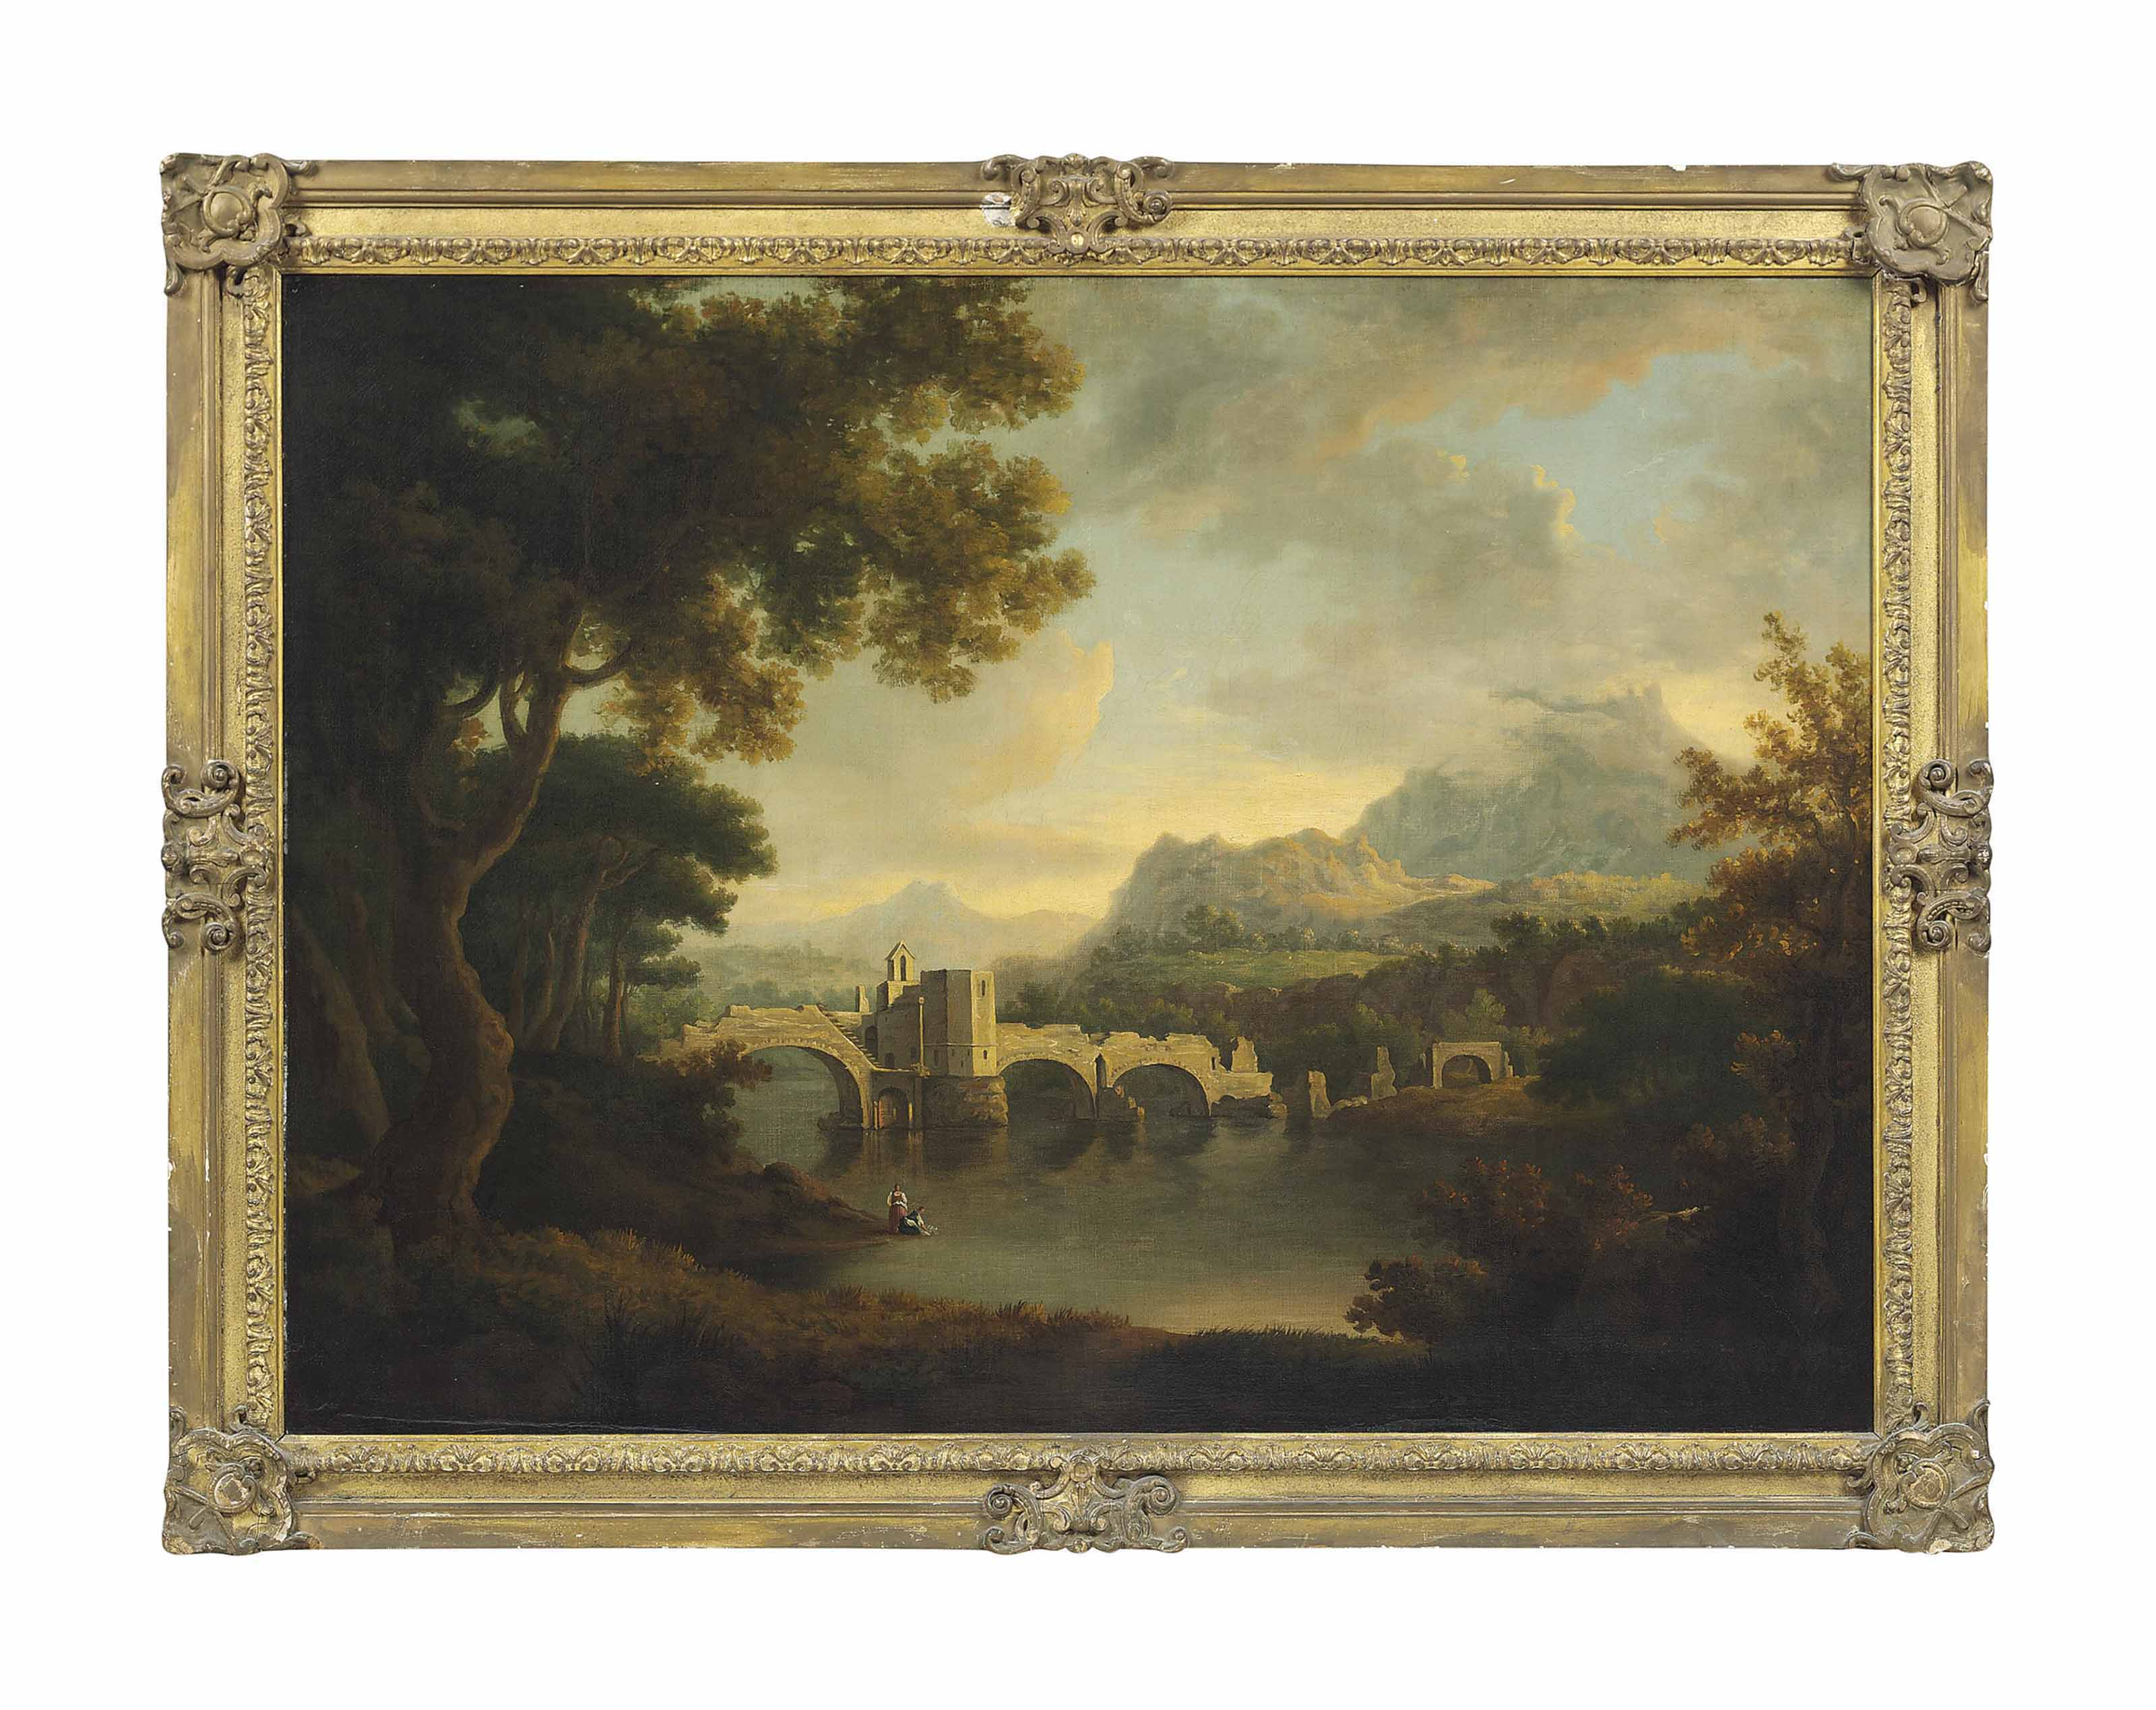 A wooded river landscape with a ruined bridge and washerwomen on a bank in the foreground